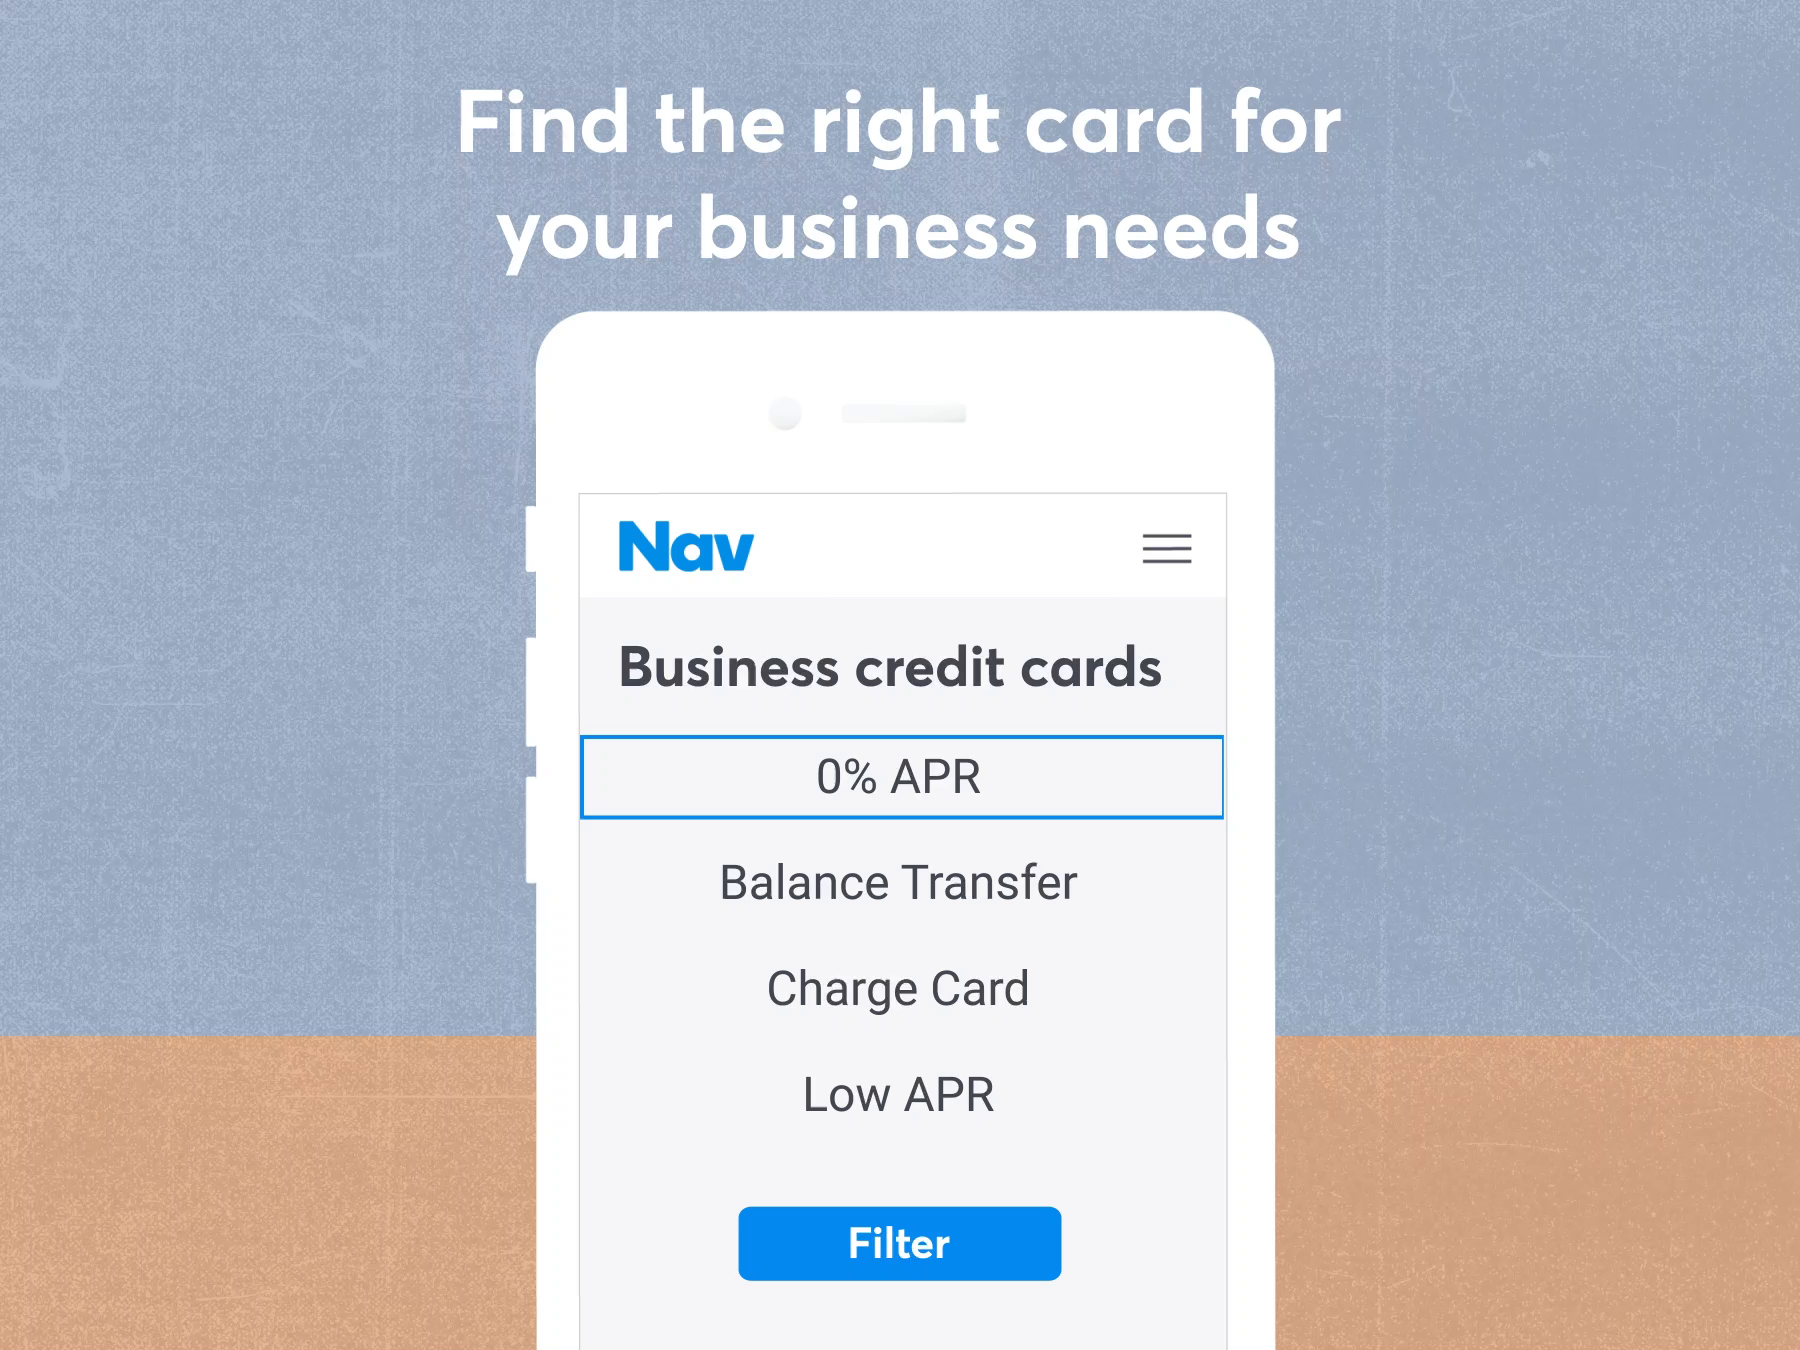 Business Credit Card Video By Lucy Deweese Dribbble Dribbble